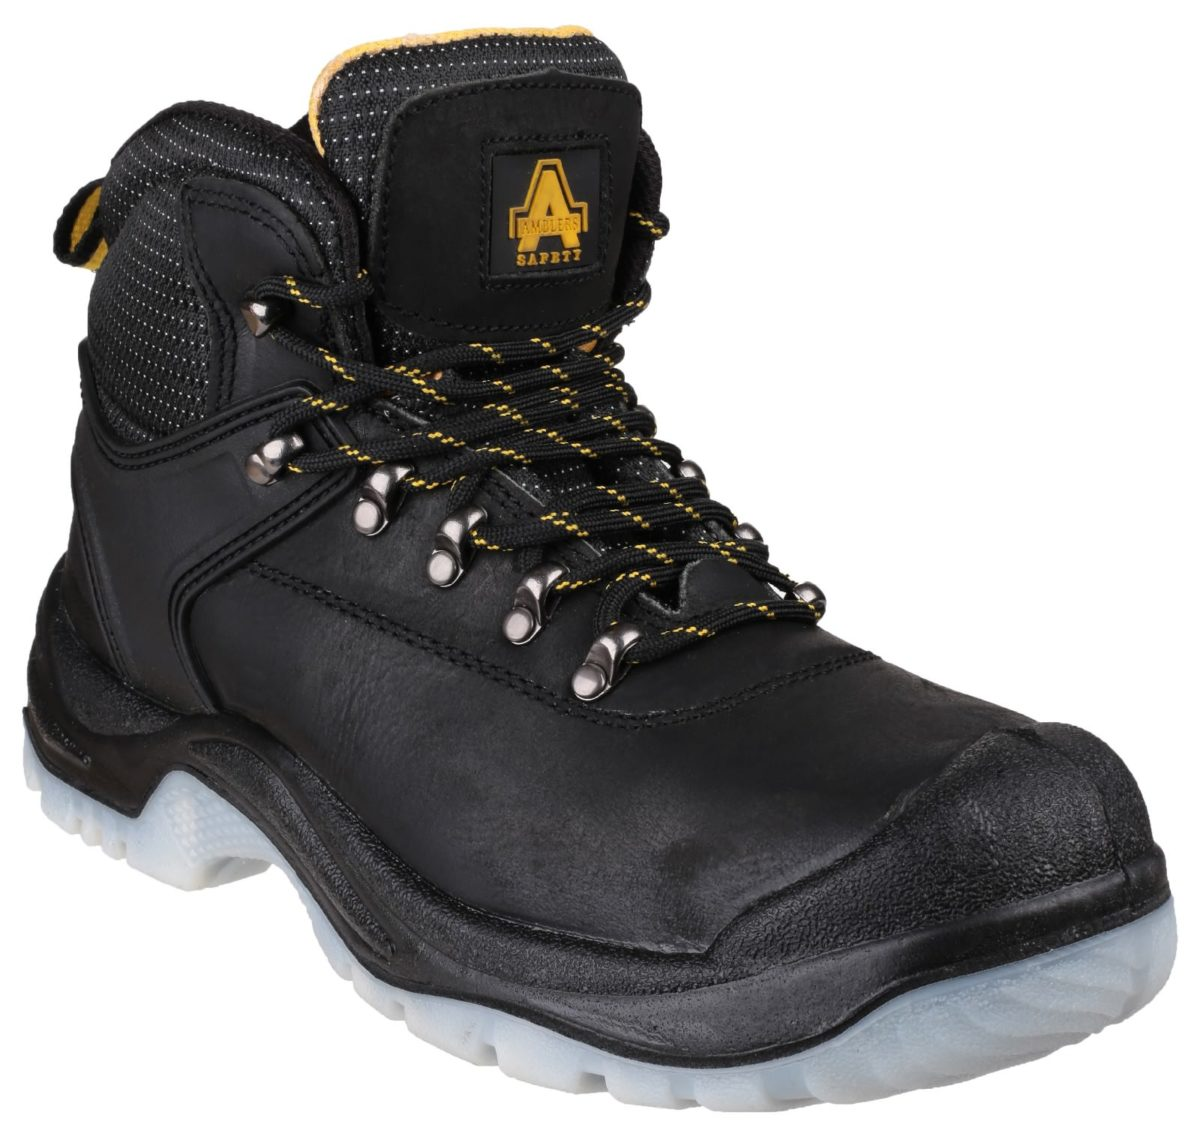 Amblers FS199 Deep Padded Hiker Safety Boot